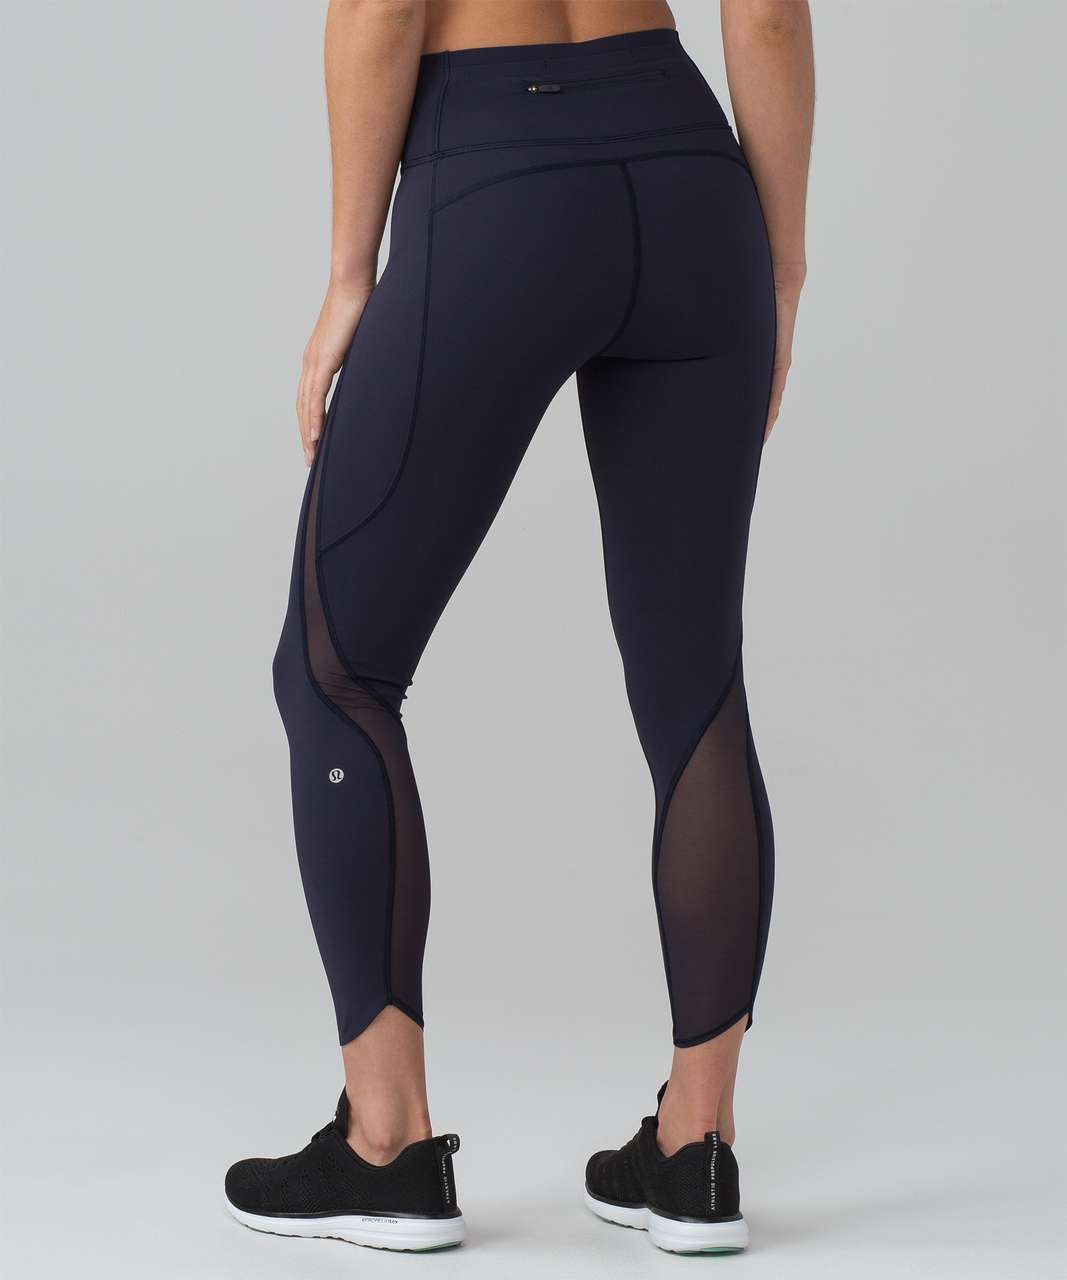 6a8f80060e Lululemon Pace Perfect 7/8 Tight (25